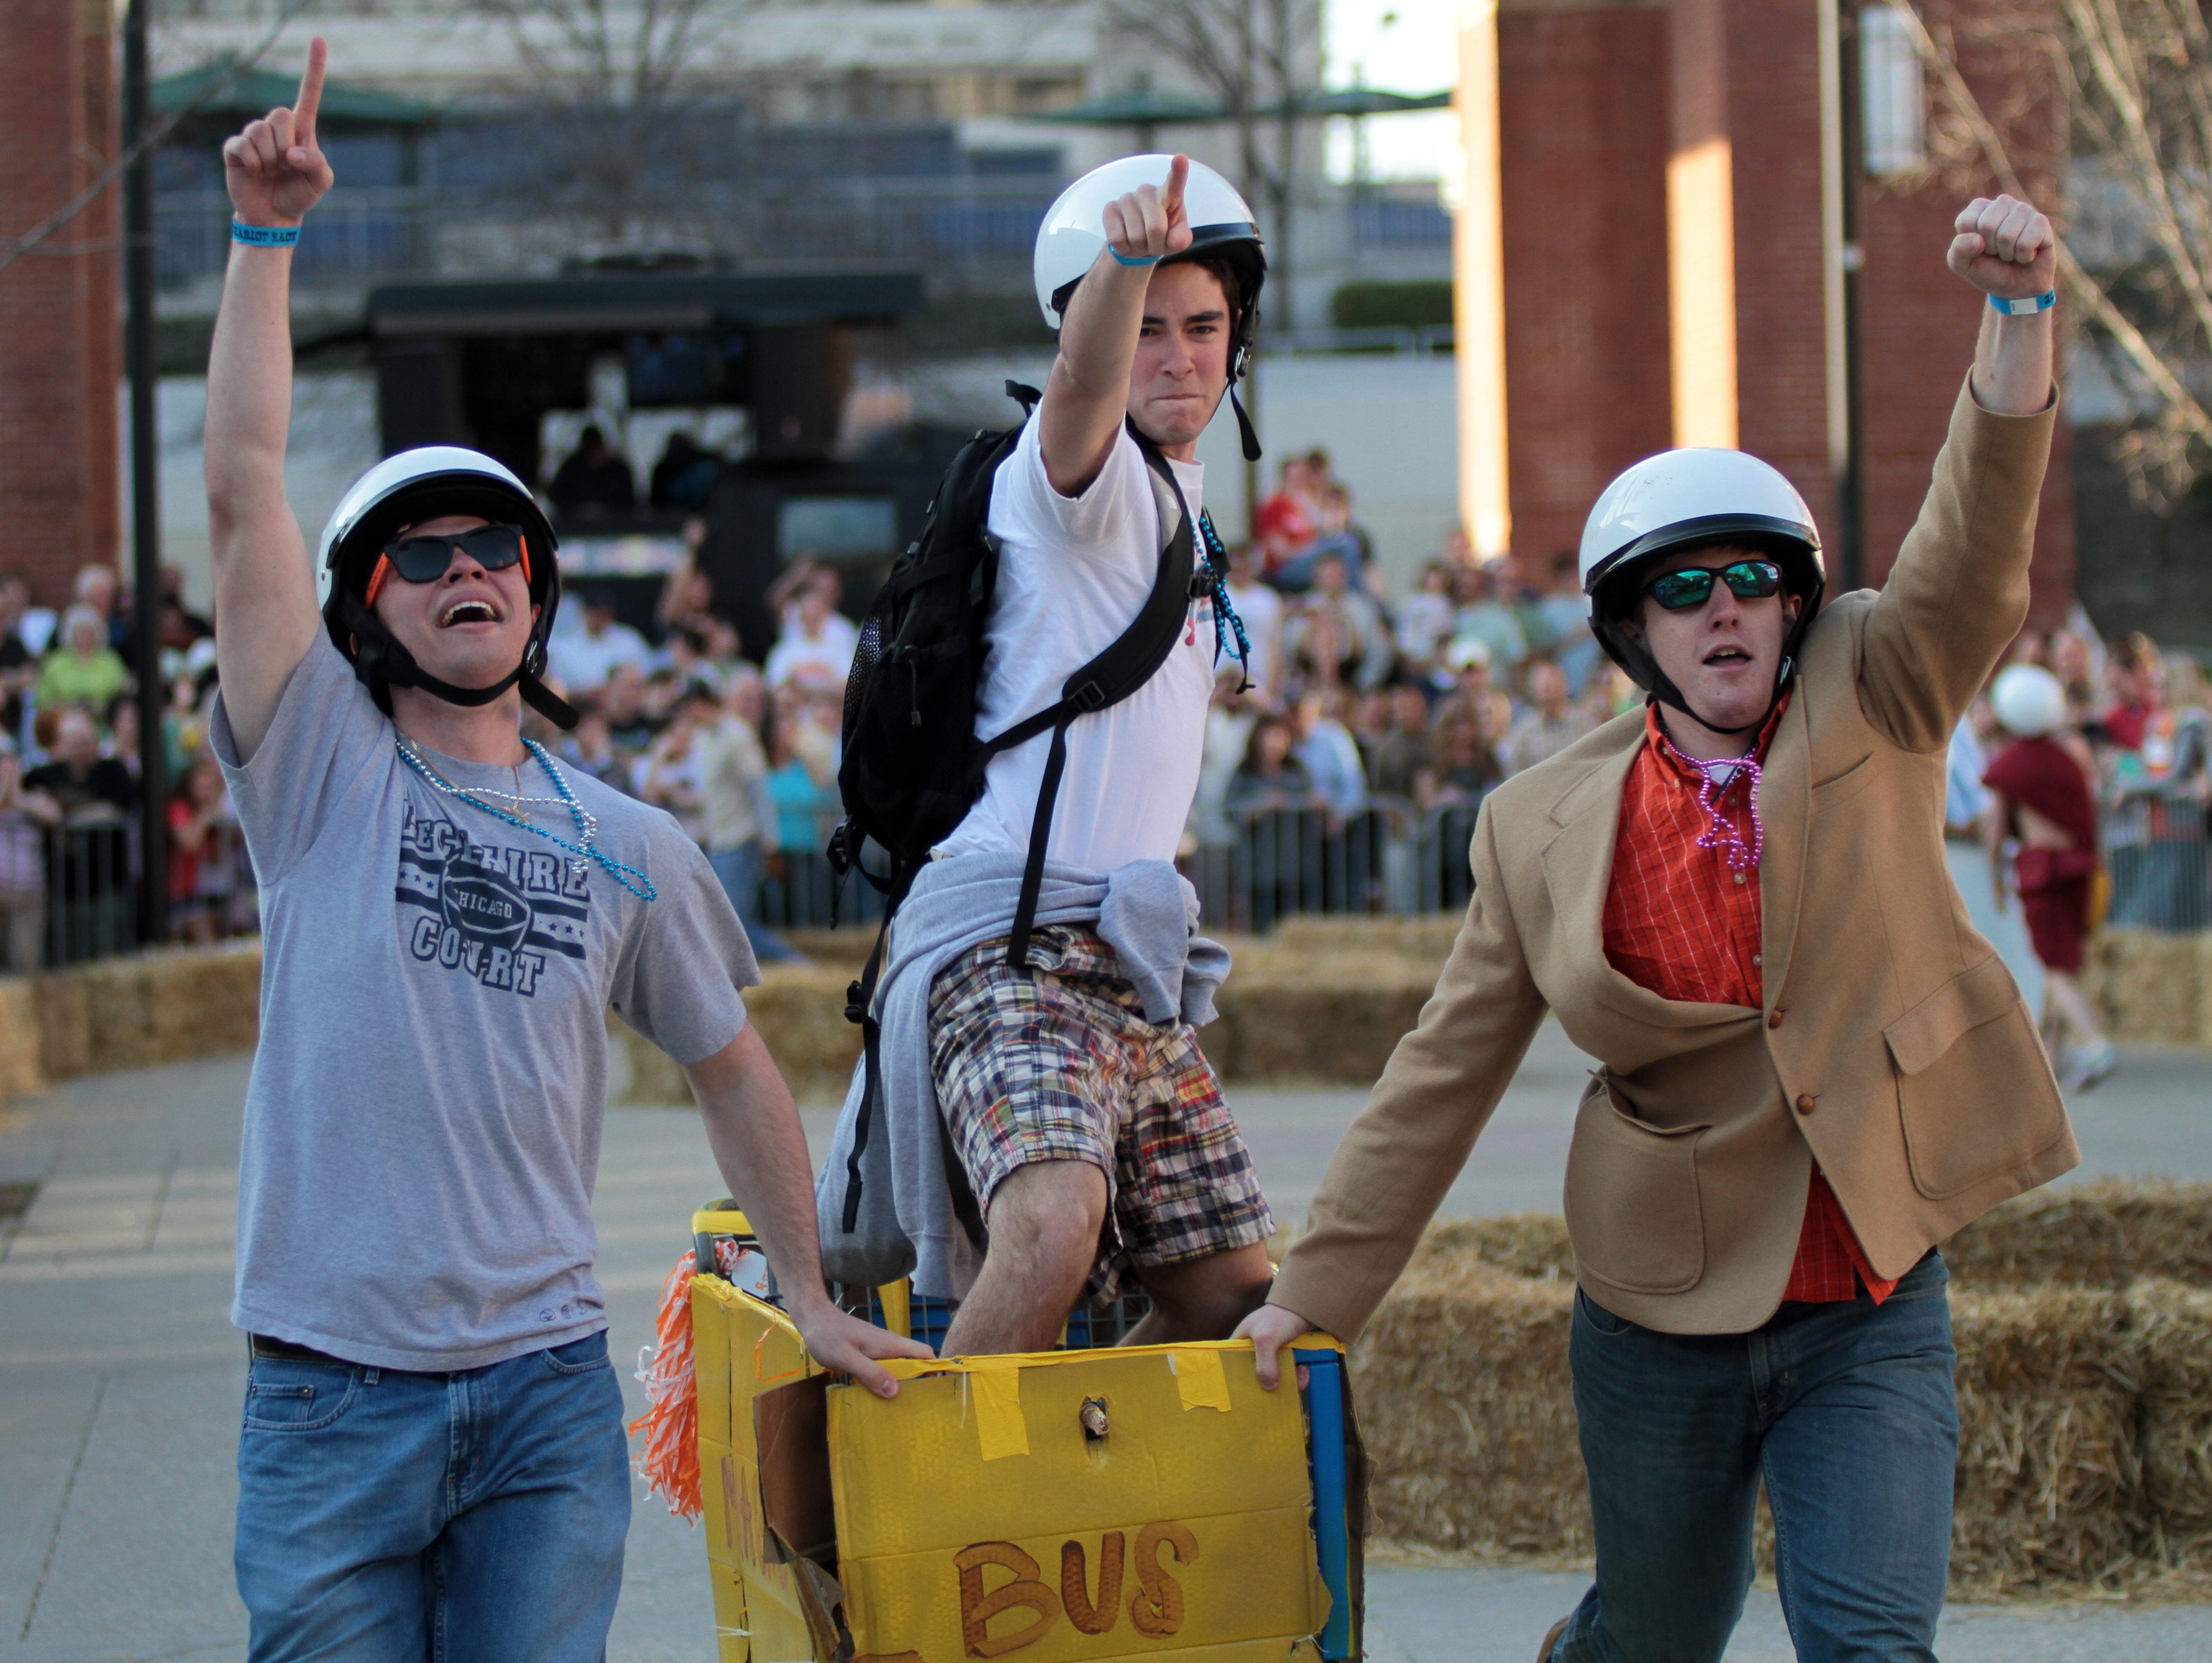 Team Magic School Bus, from left, Ross Rowland, Adam Roddy and Sovica Djurdjevic come across the finish line on Saturday, March 27, 2010 during the Red Bull Chariot Race on Market Square.